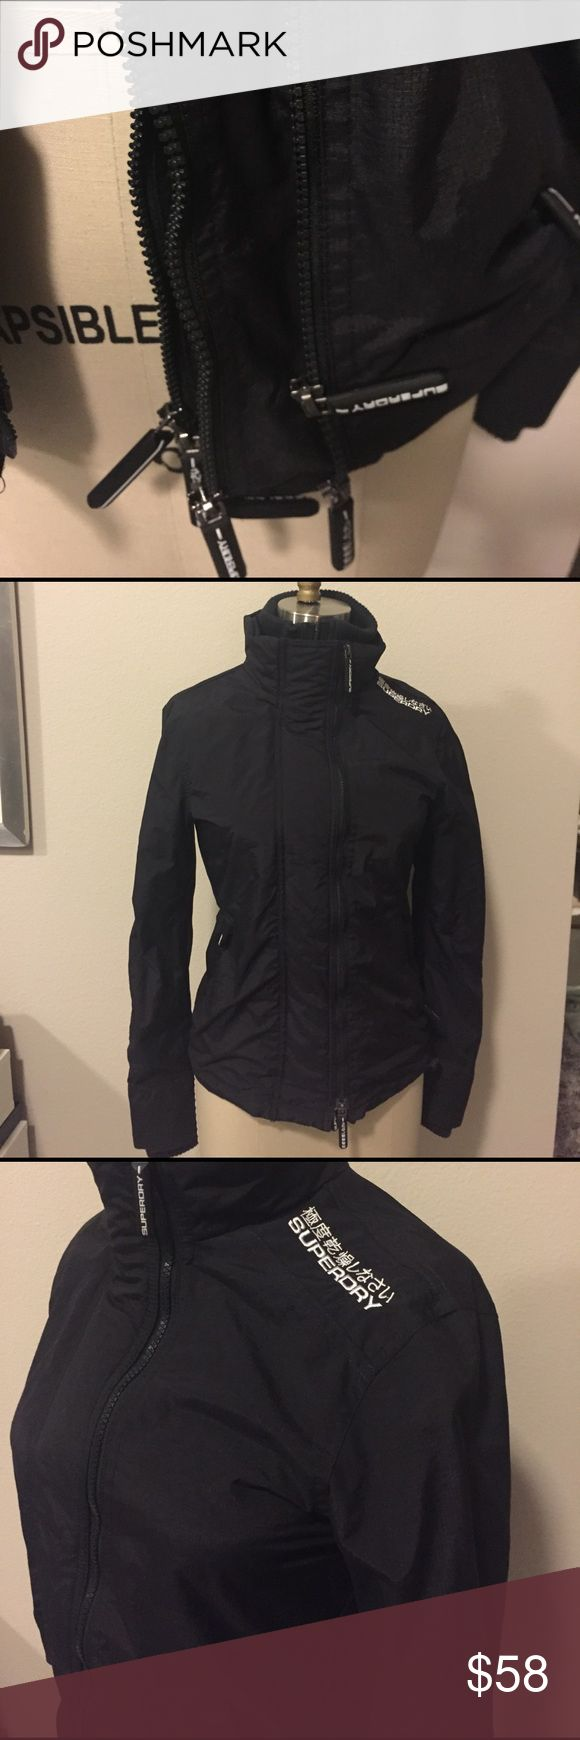 Superdry jacket. Worn a couple of times in great condition. Superdry Jackets & Coats Utility Jackets